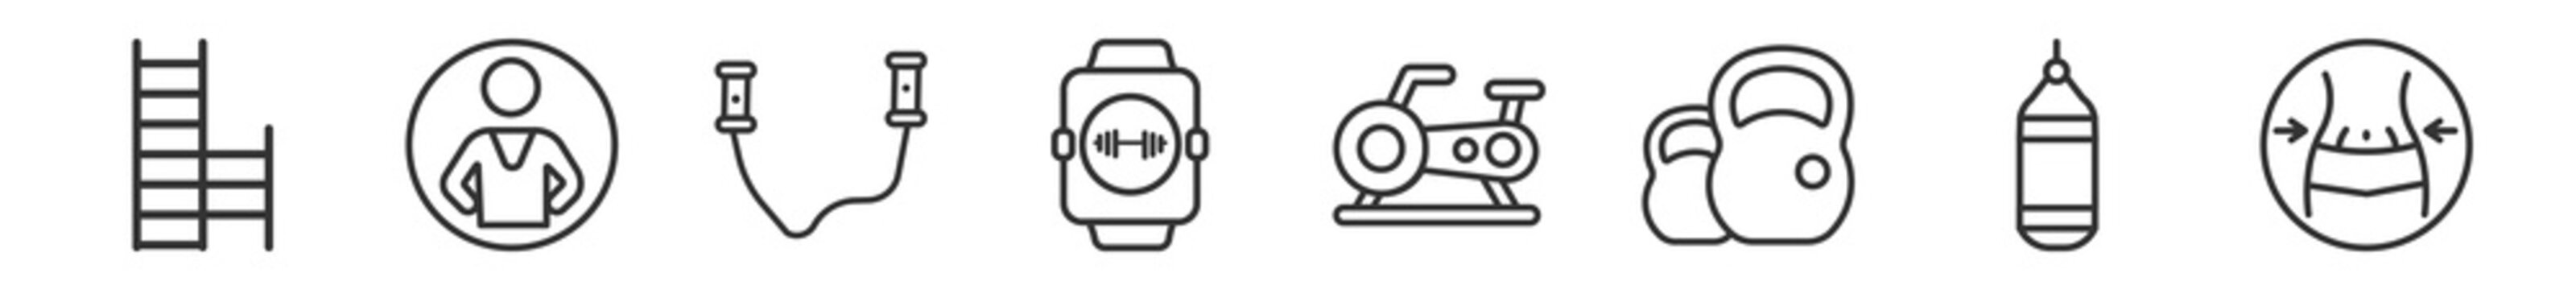 outline set of gymandfitness line icons. linear vector icons such as gym ladder, trainer, skipping rope, fitness watch, stationary bike, waist. vector illustration.